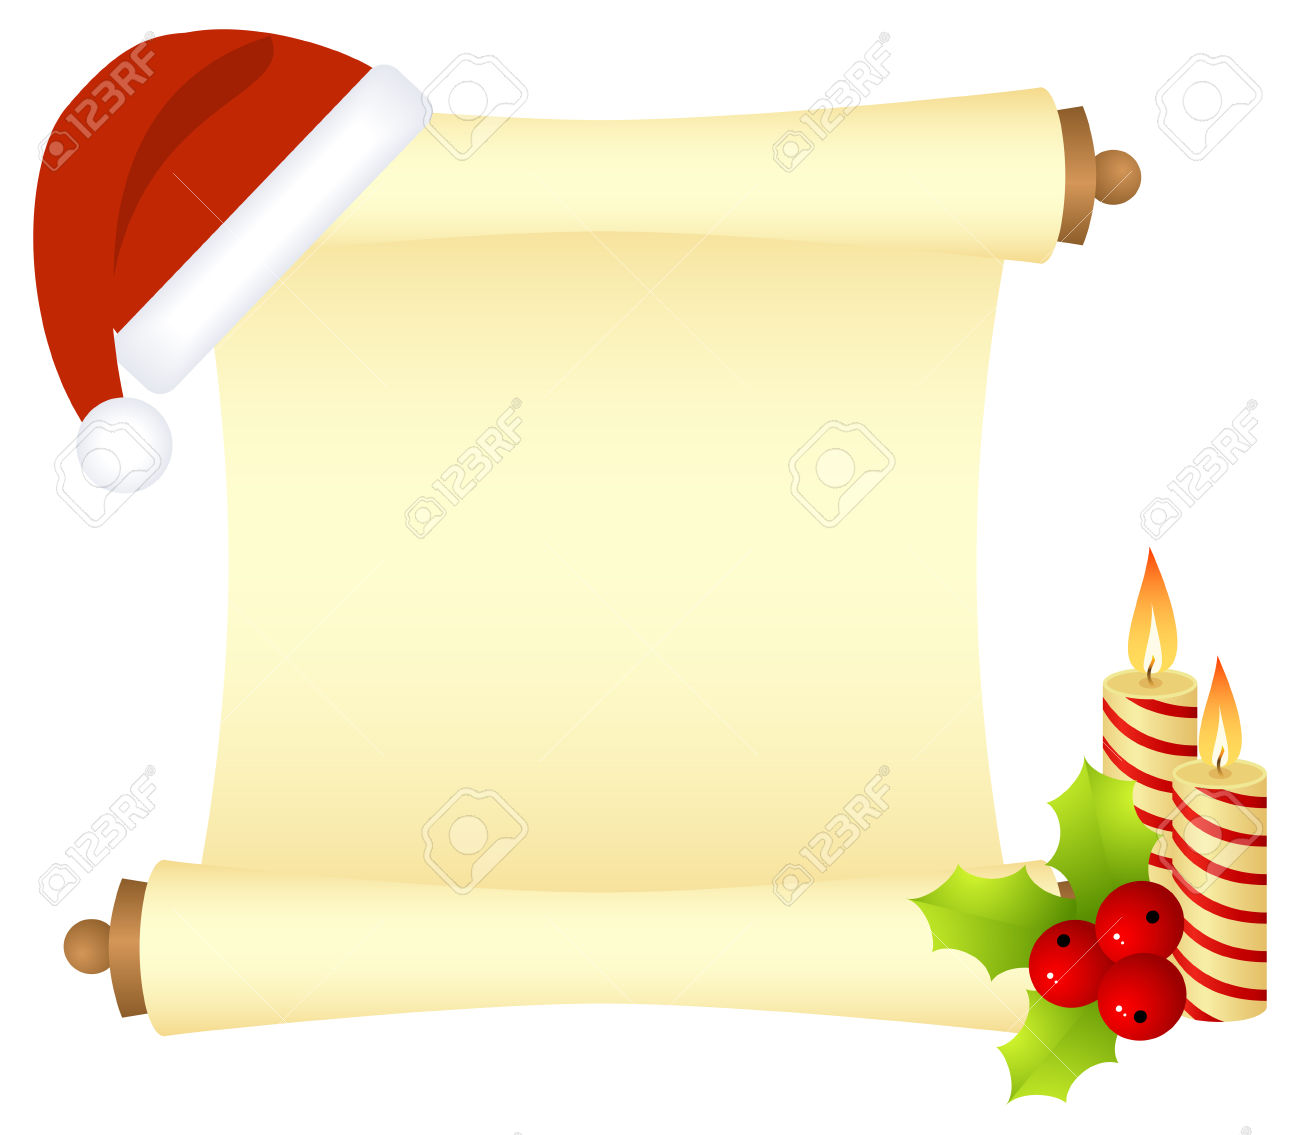 scroll letter clipart.